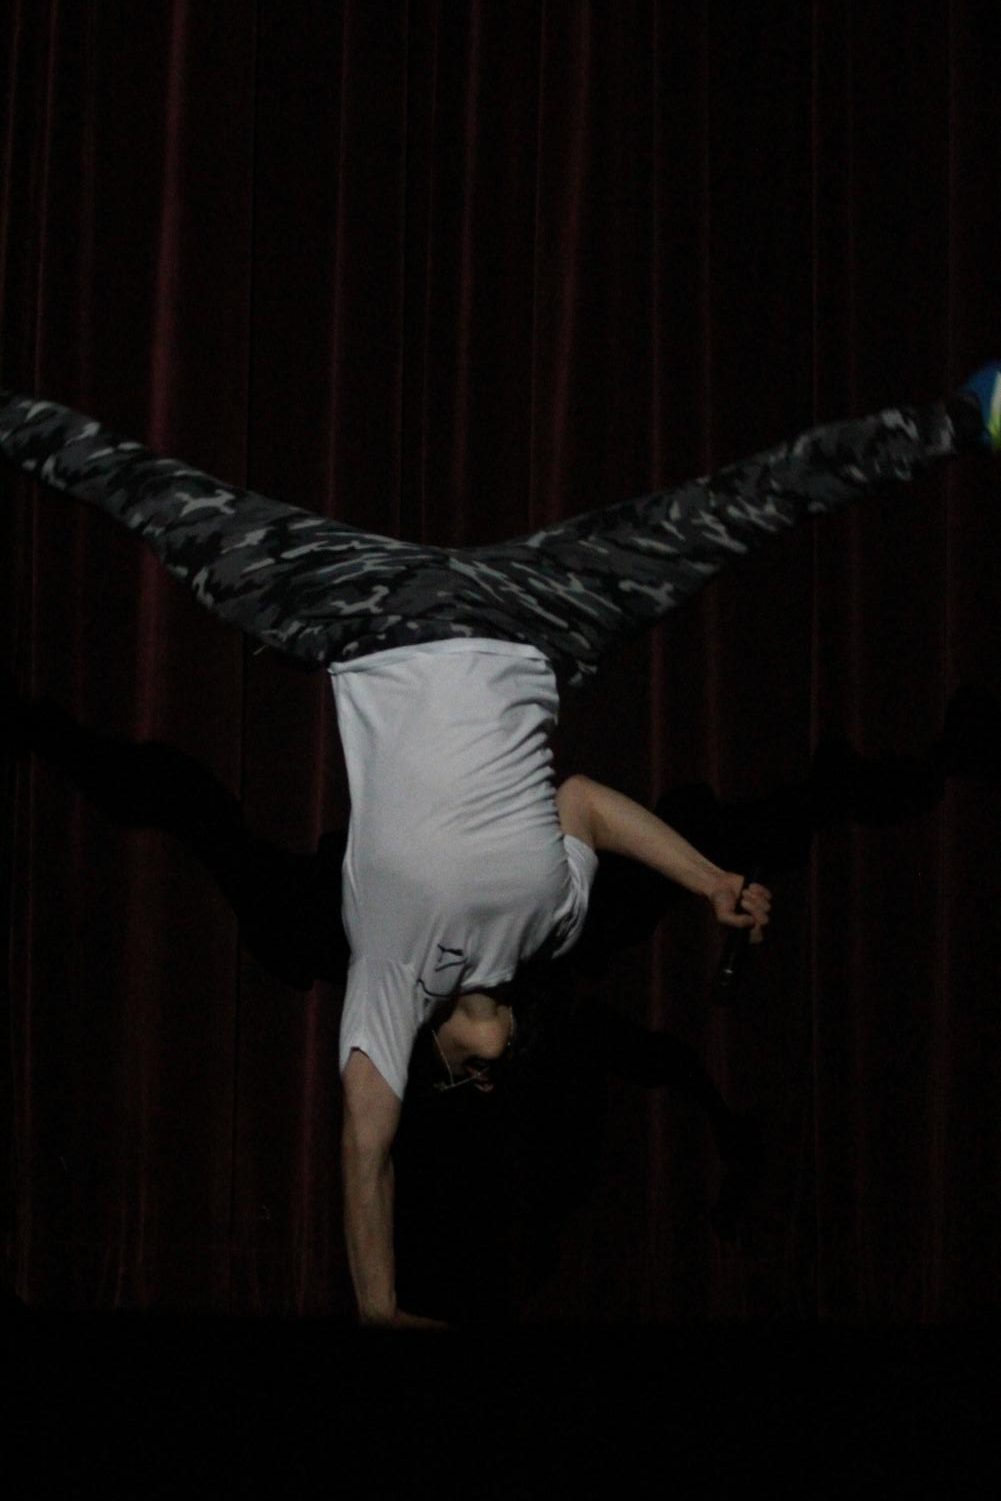 Senior+and+contestant+Phillip+Kostin+does+a+cartwheel+after+his+motivational+speech-turned+rap+during+the+talent+portion+of+the+Mr.+Watkins+Mill+contest.+